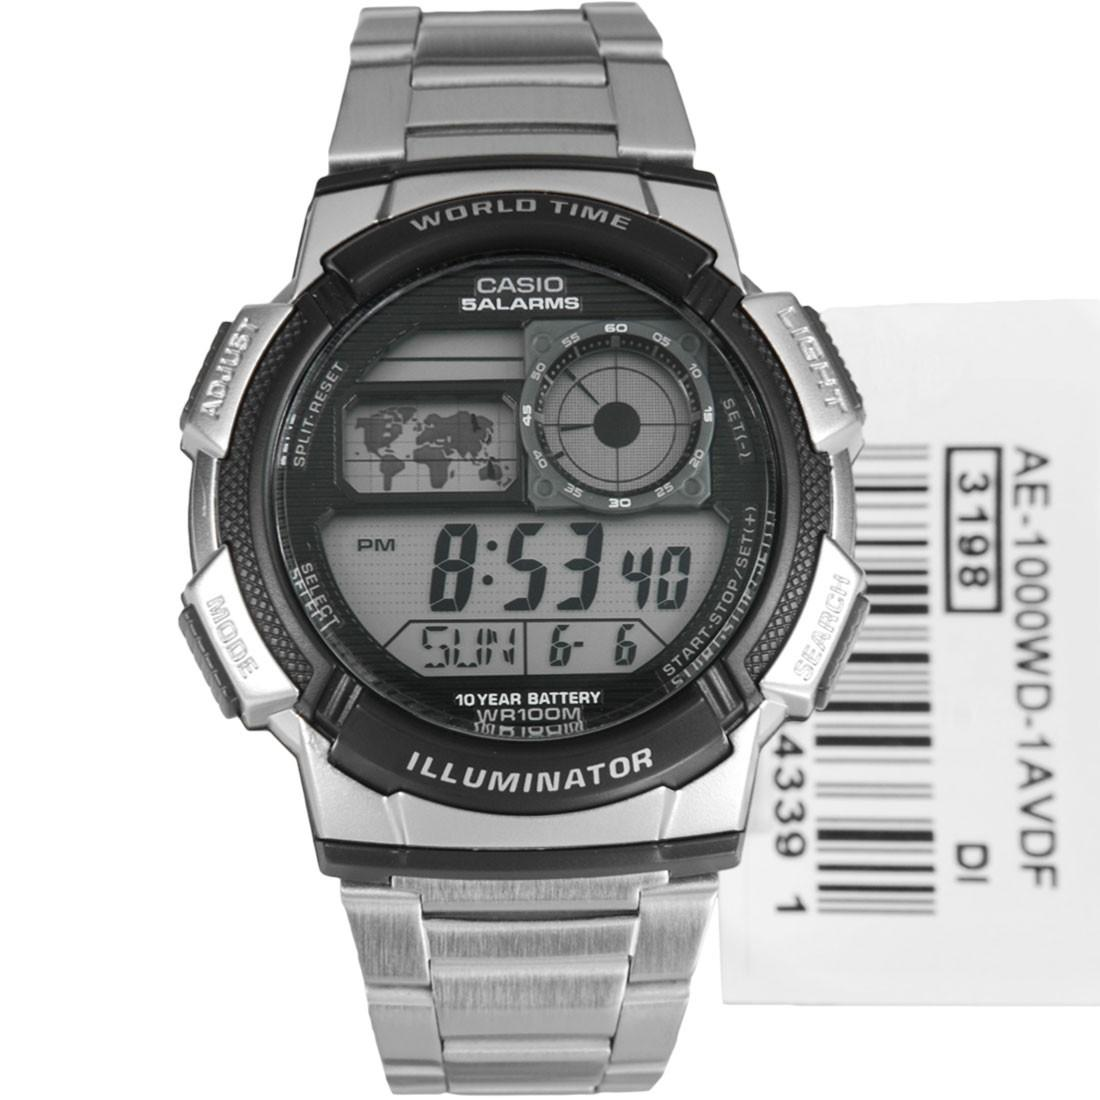 efaa87e61b1 Casio Illuminator Sports Digital Men s Silver Stainless Steel Watch AE -1000WD-1AVDF